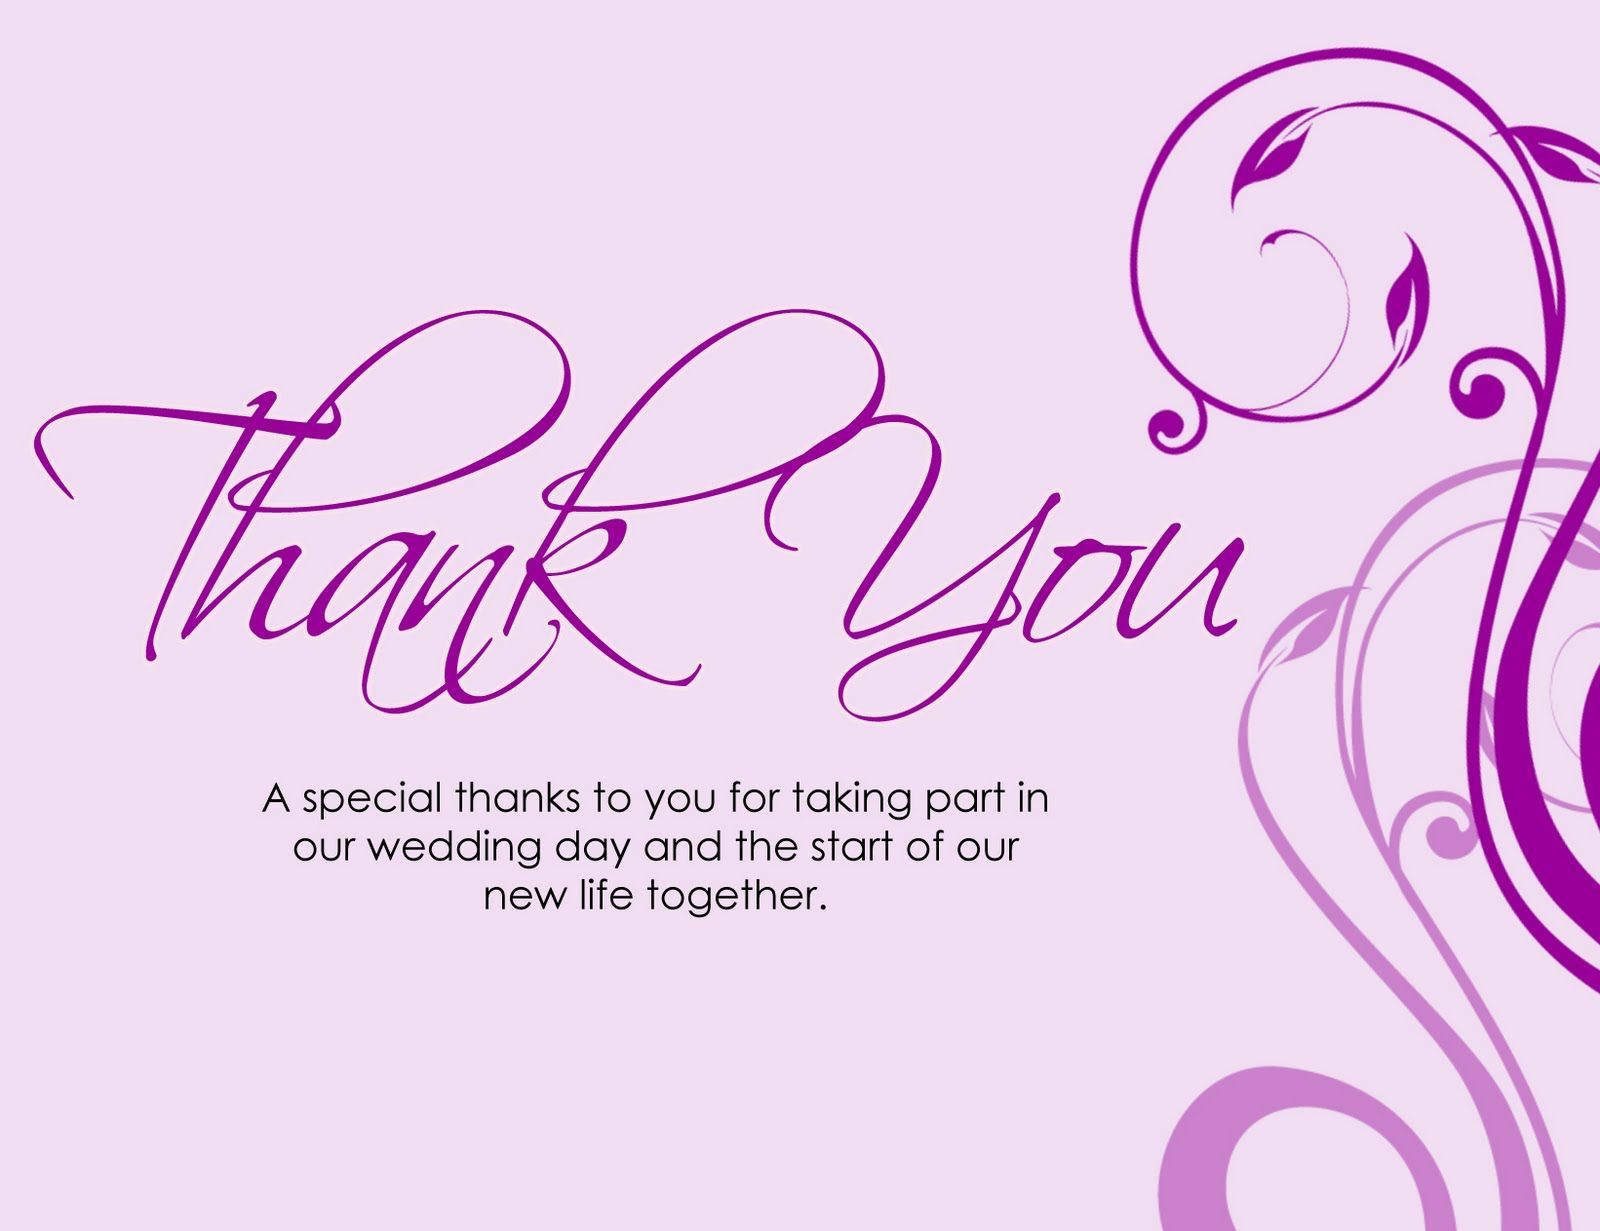 Thank you card for wedding Best Business Cards – Thank You Card for Wedding